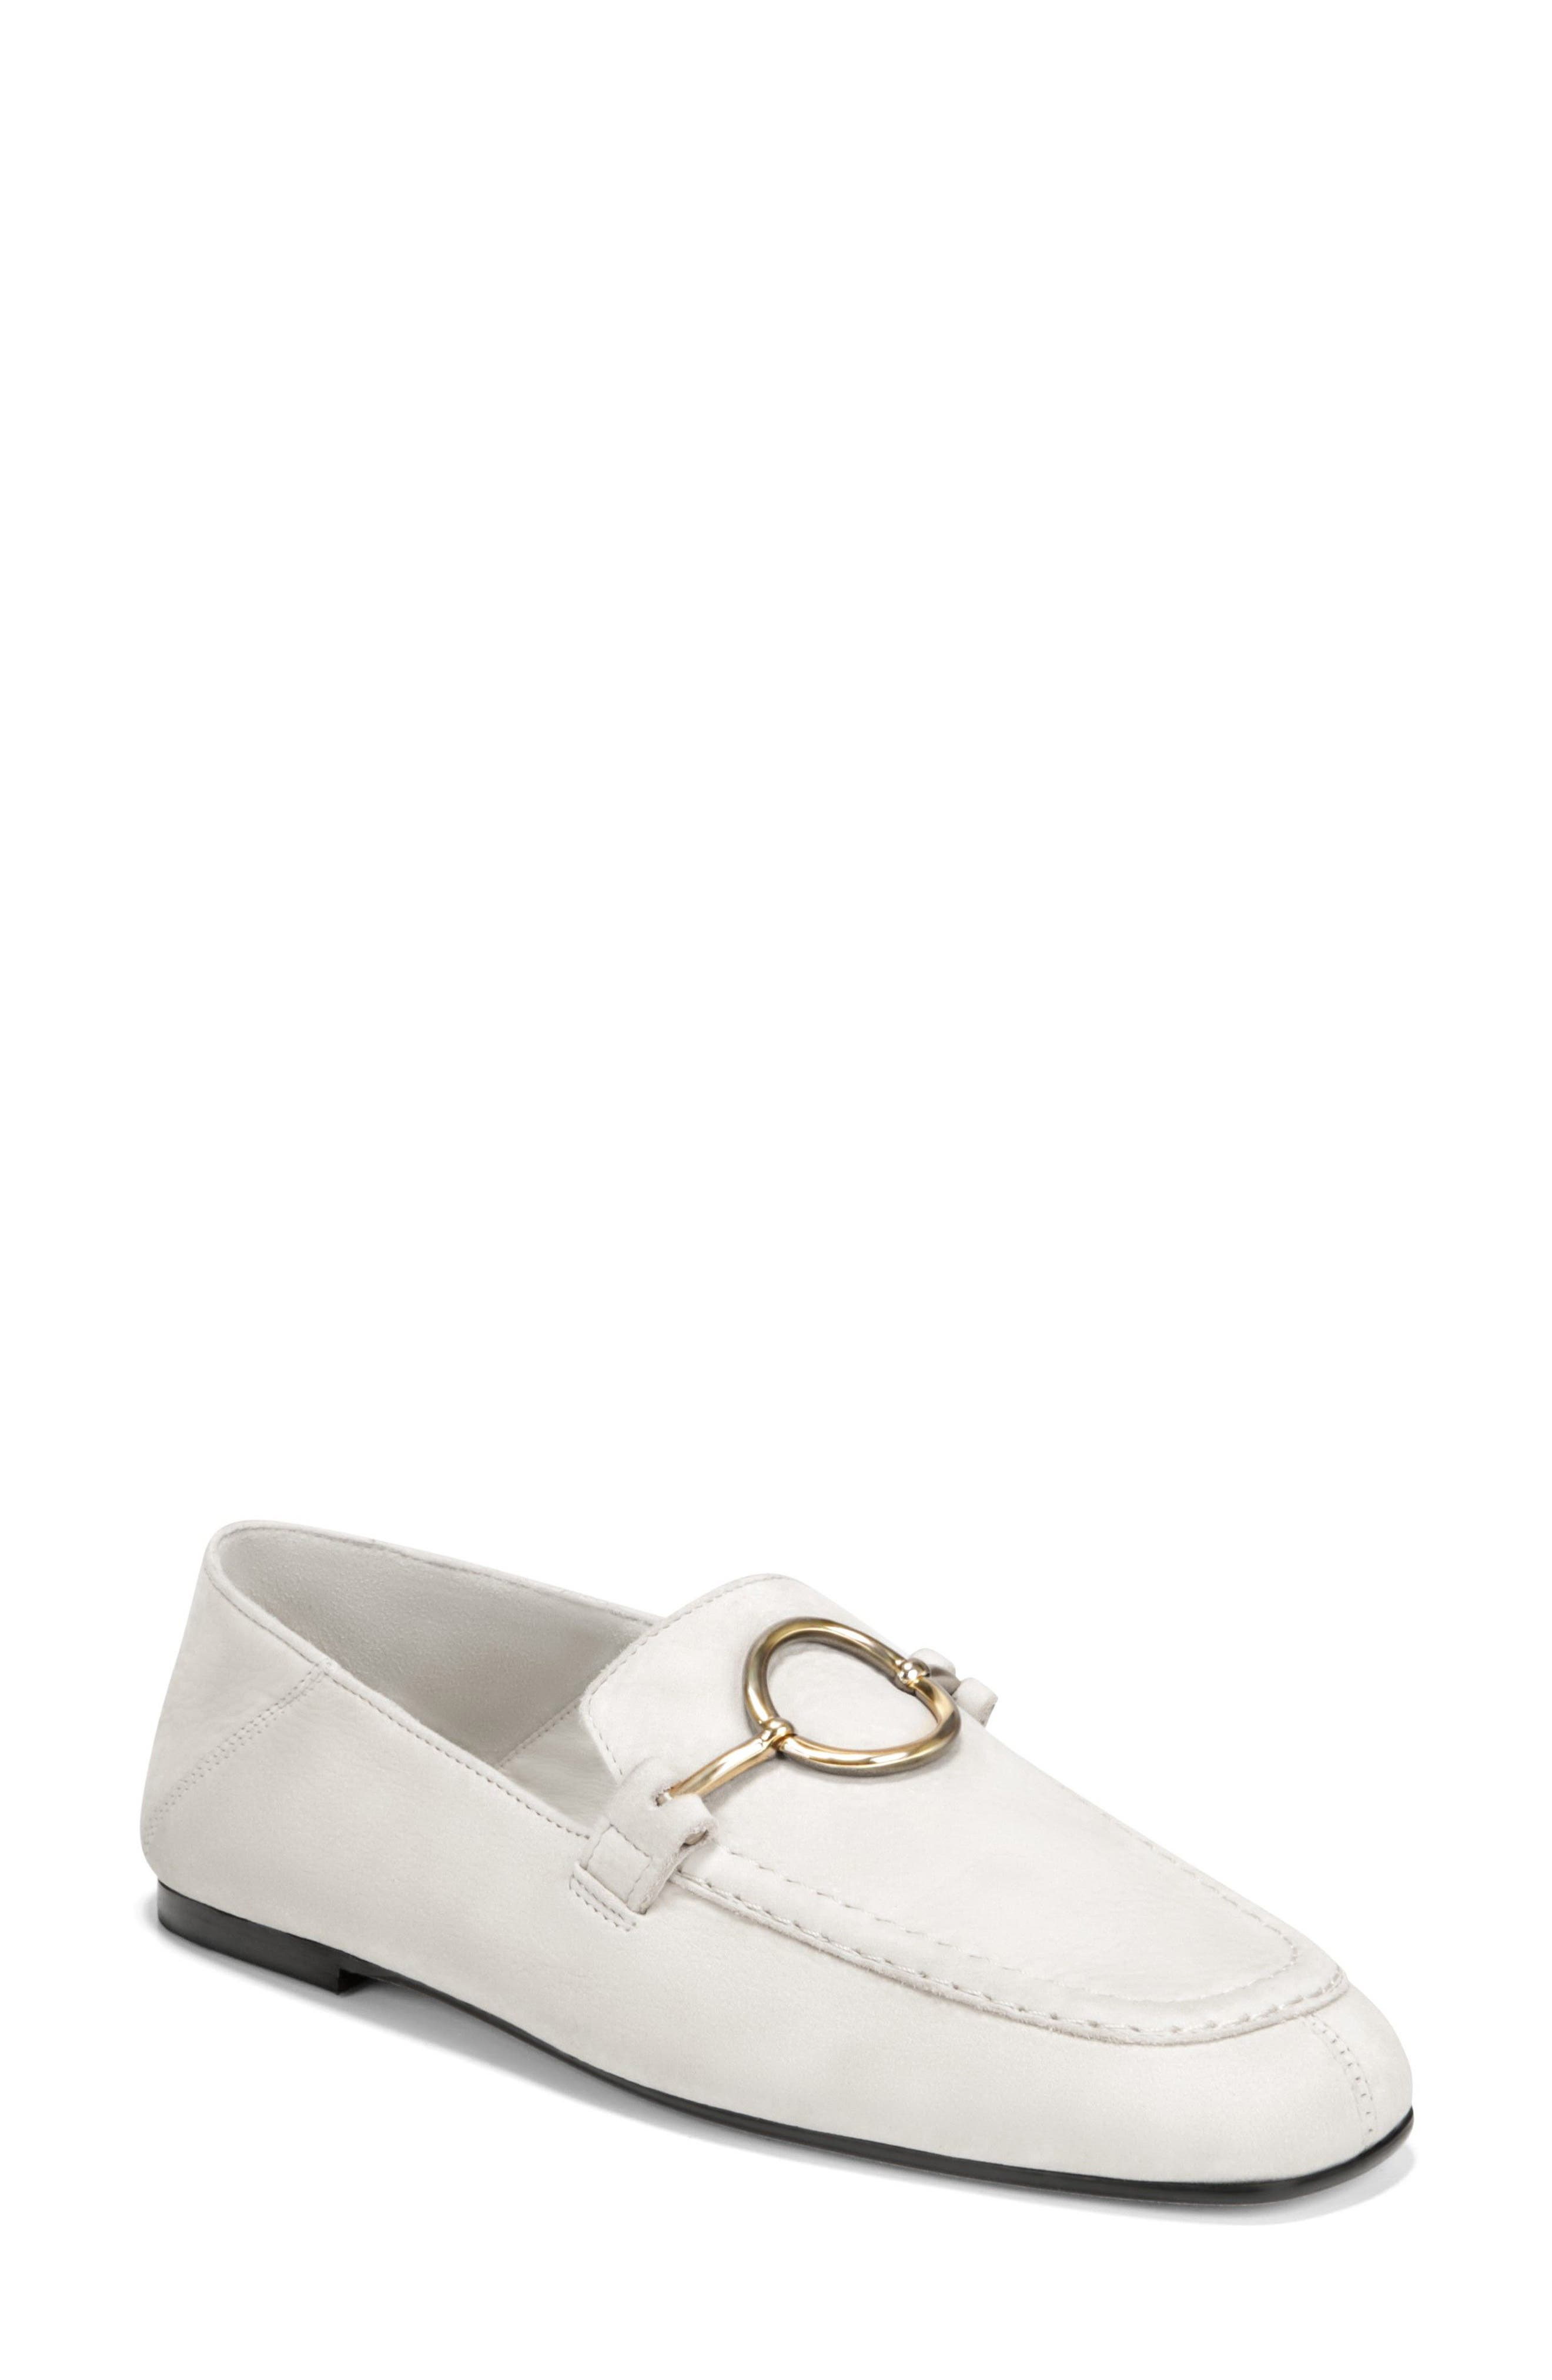 Abby Loafer,                             Main thumbnail 1, color,                             Porcelain Leather